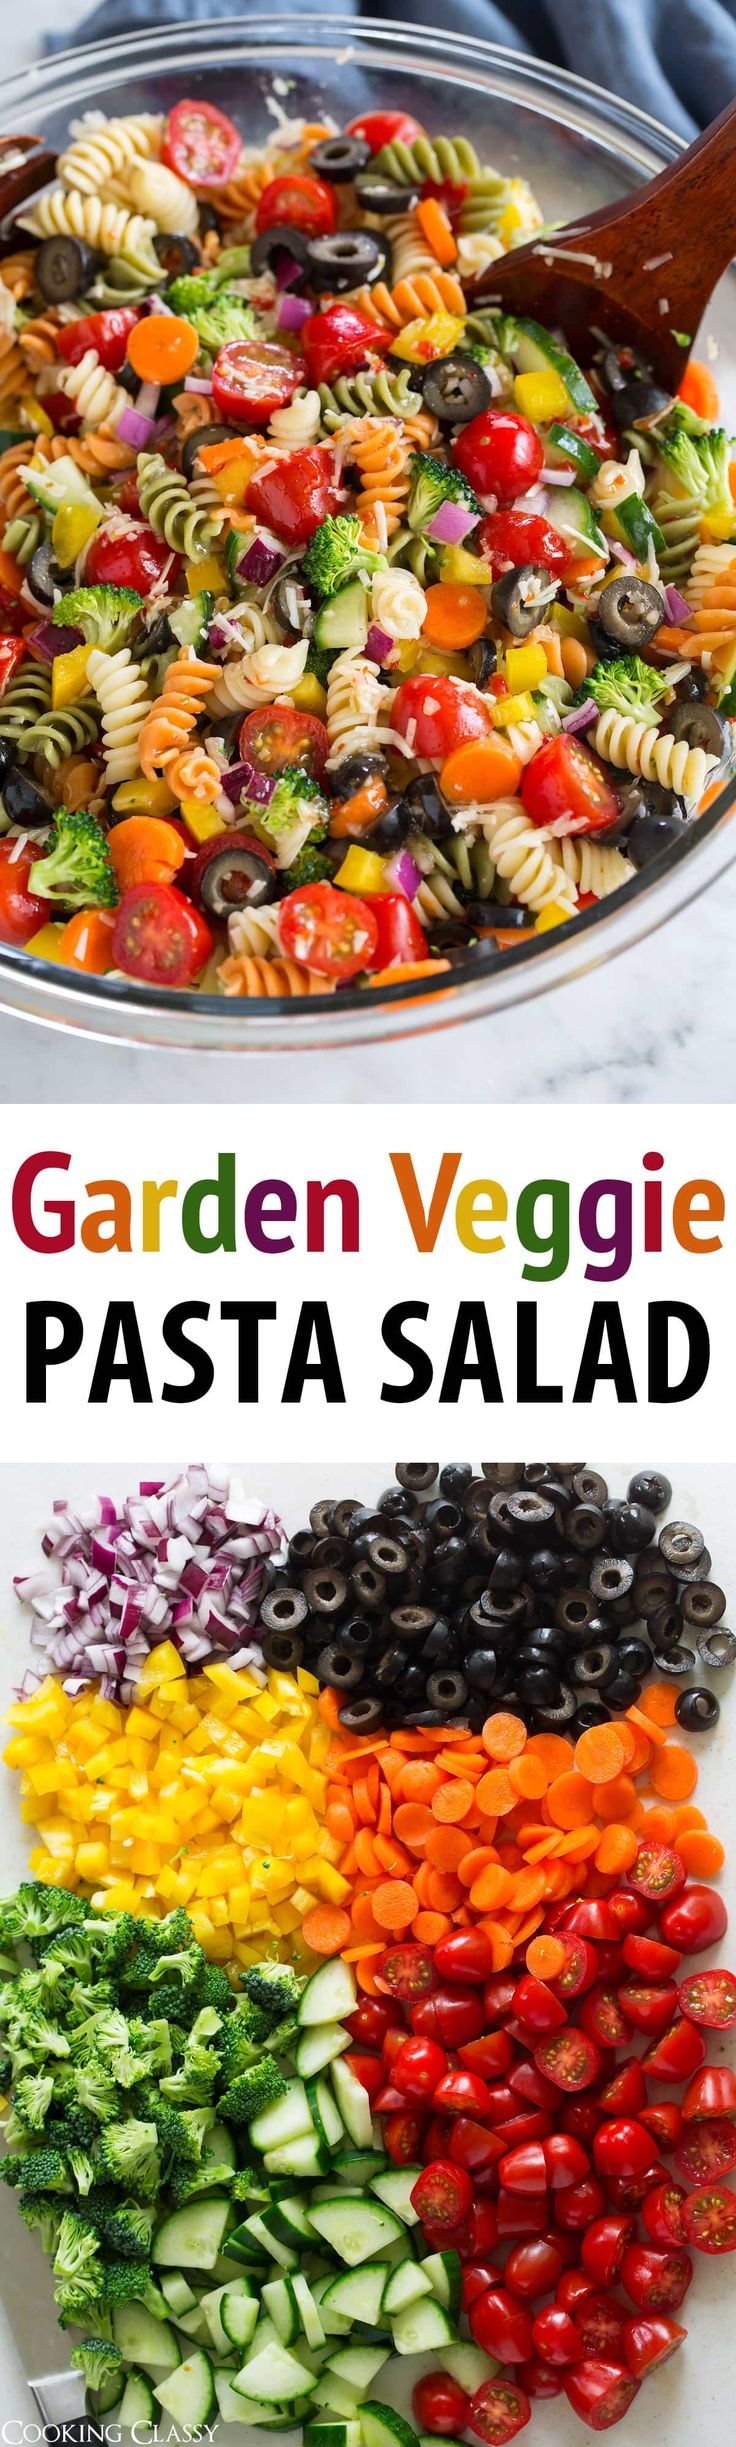 Pasta Salad is one of those staple recipes that's …